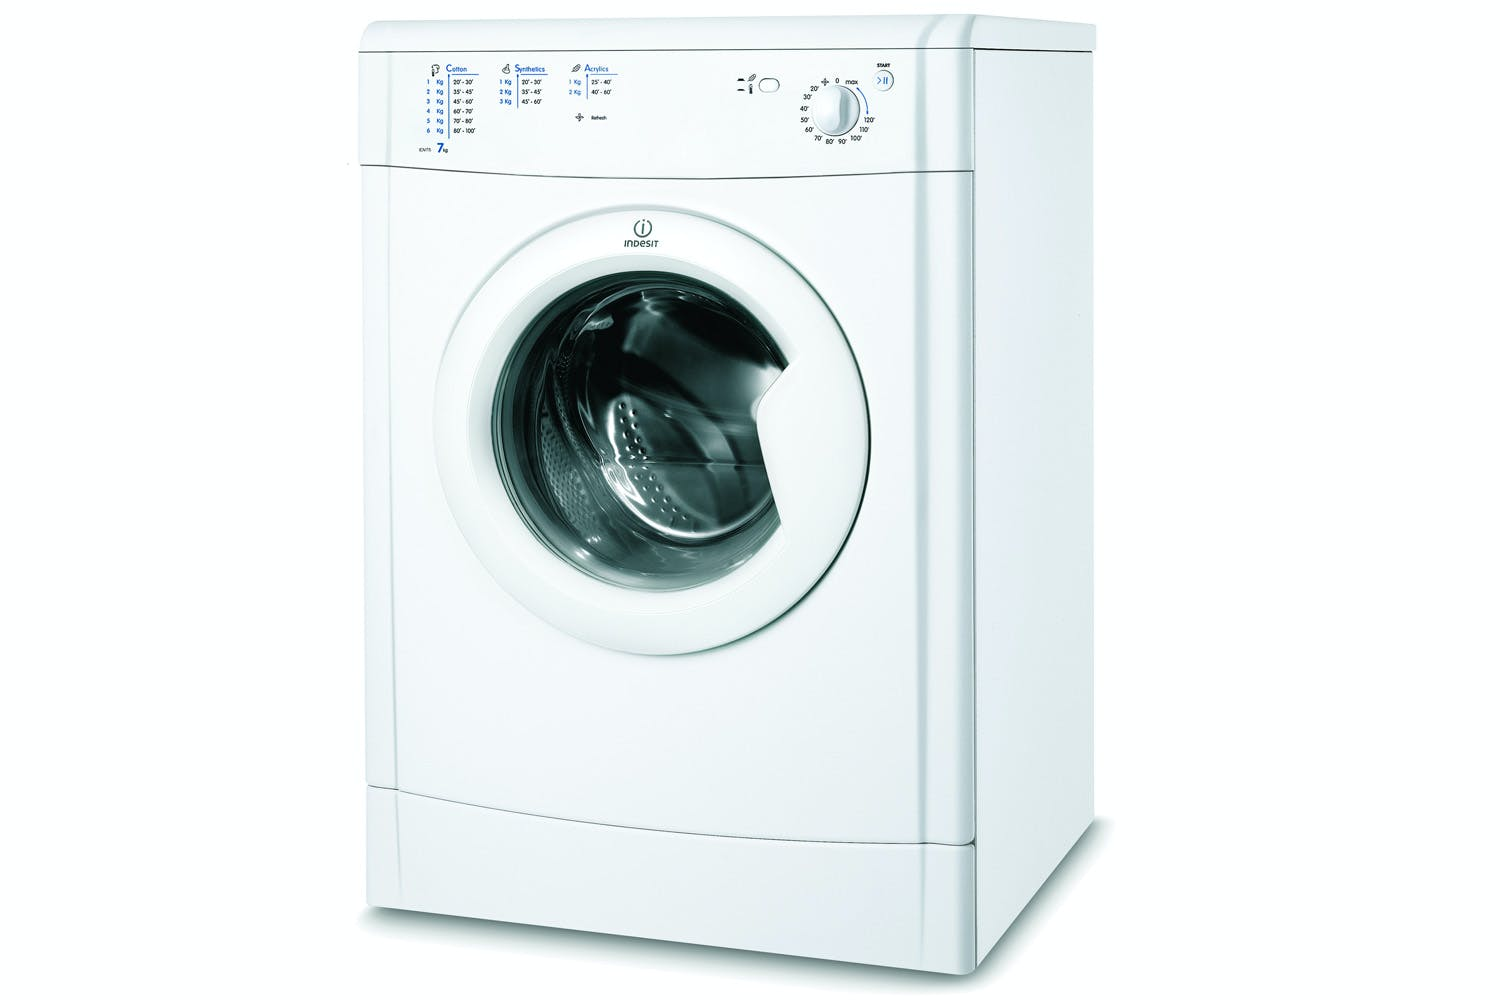 indesit 7kg vented tumble dryer idv75 ireland. Black Bedroom Furniture Sets. Home Design Ideas